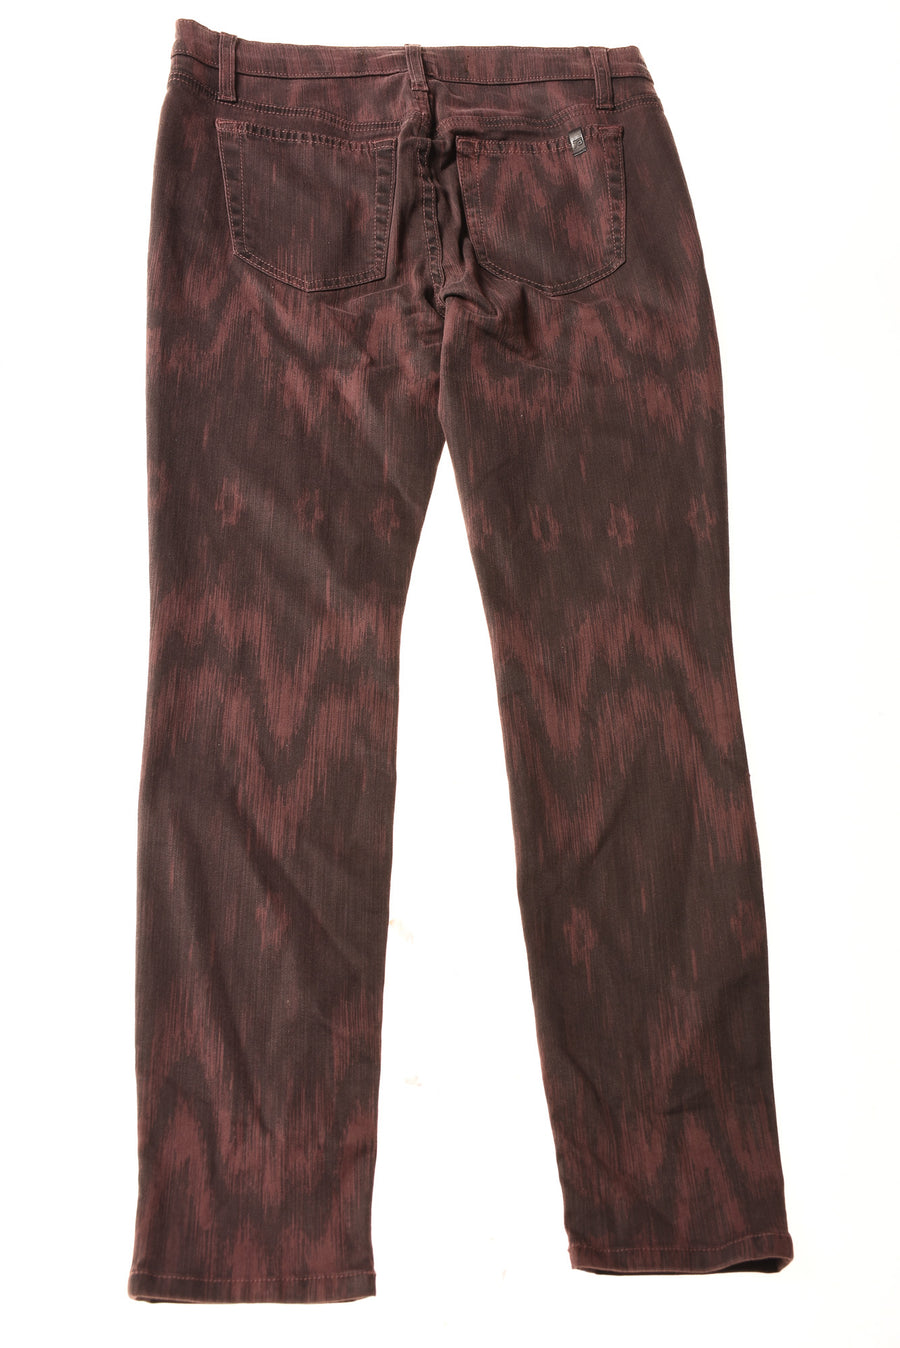 USED Joe's Women's Jeans 28 Burgandy